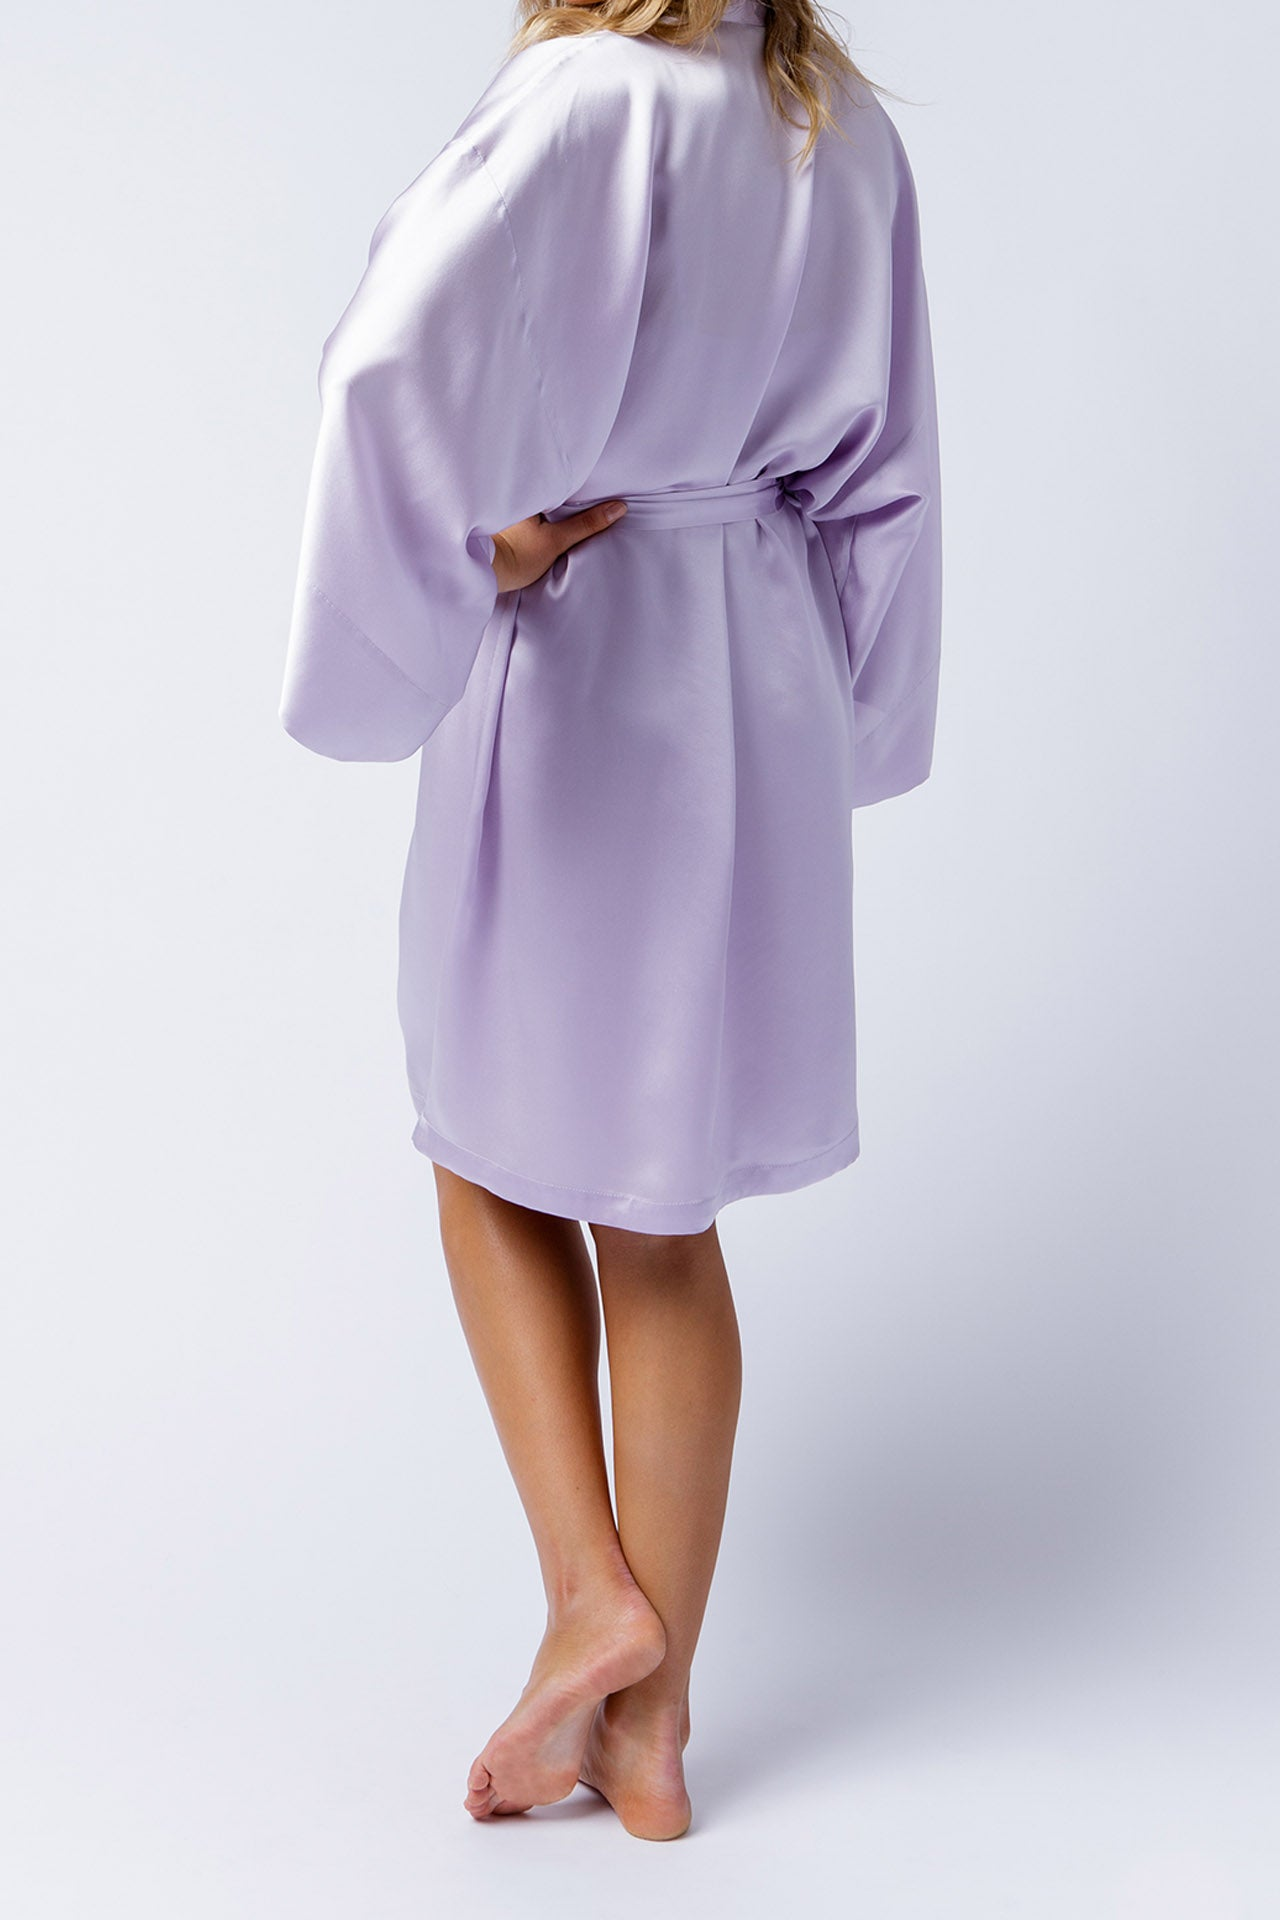 Serena Kimono in orchid, belted back